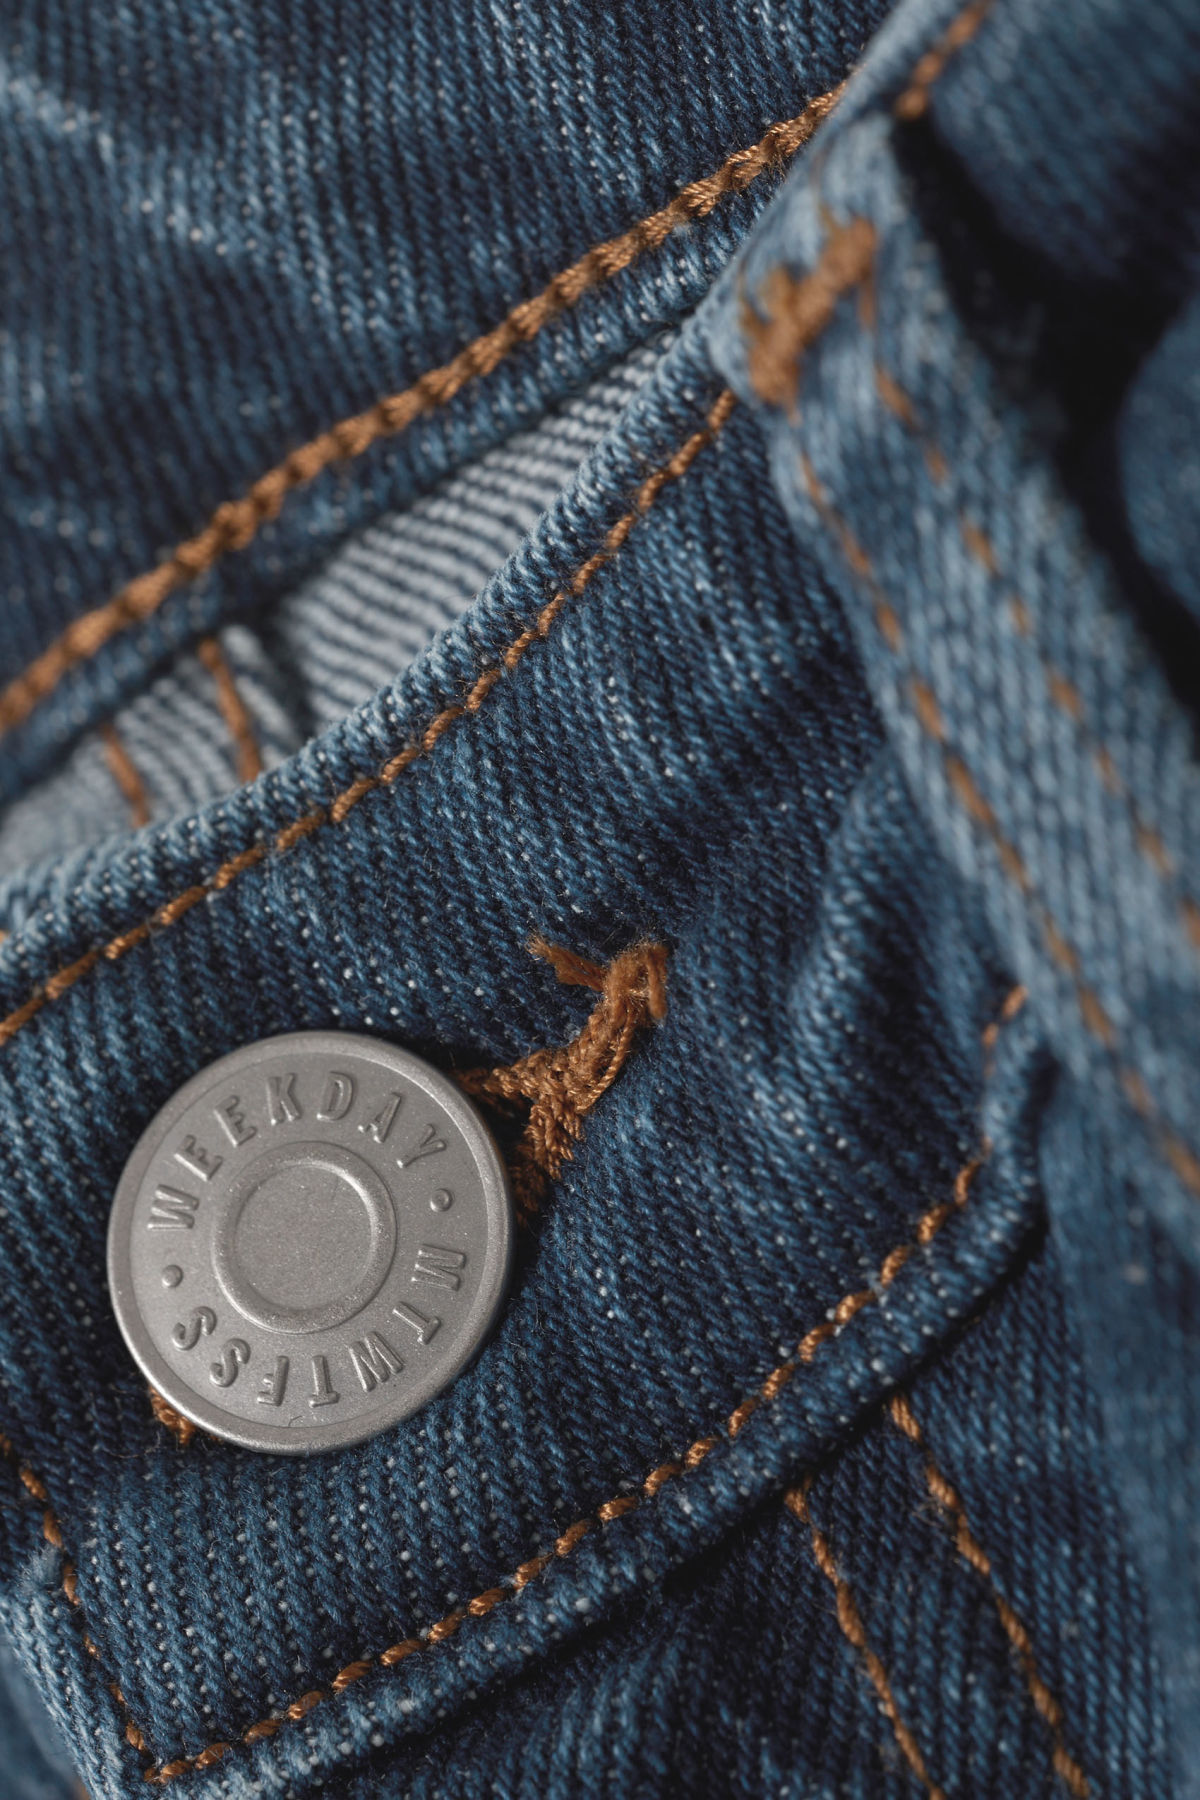 Detailed image of Weekday way peralta blue jeans in blue